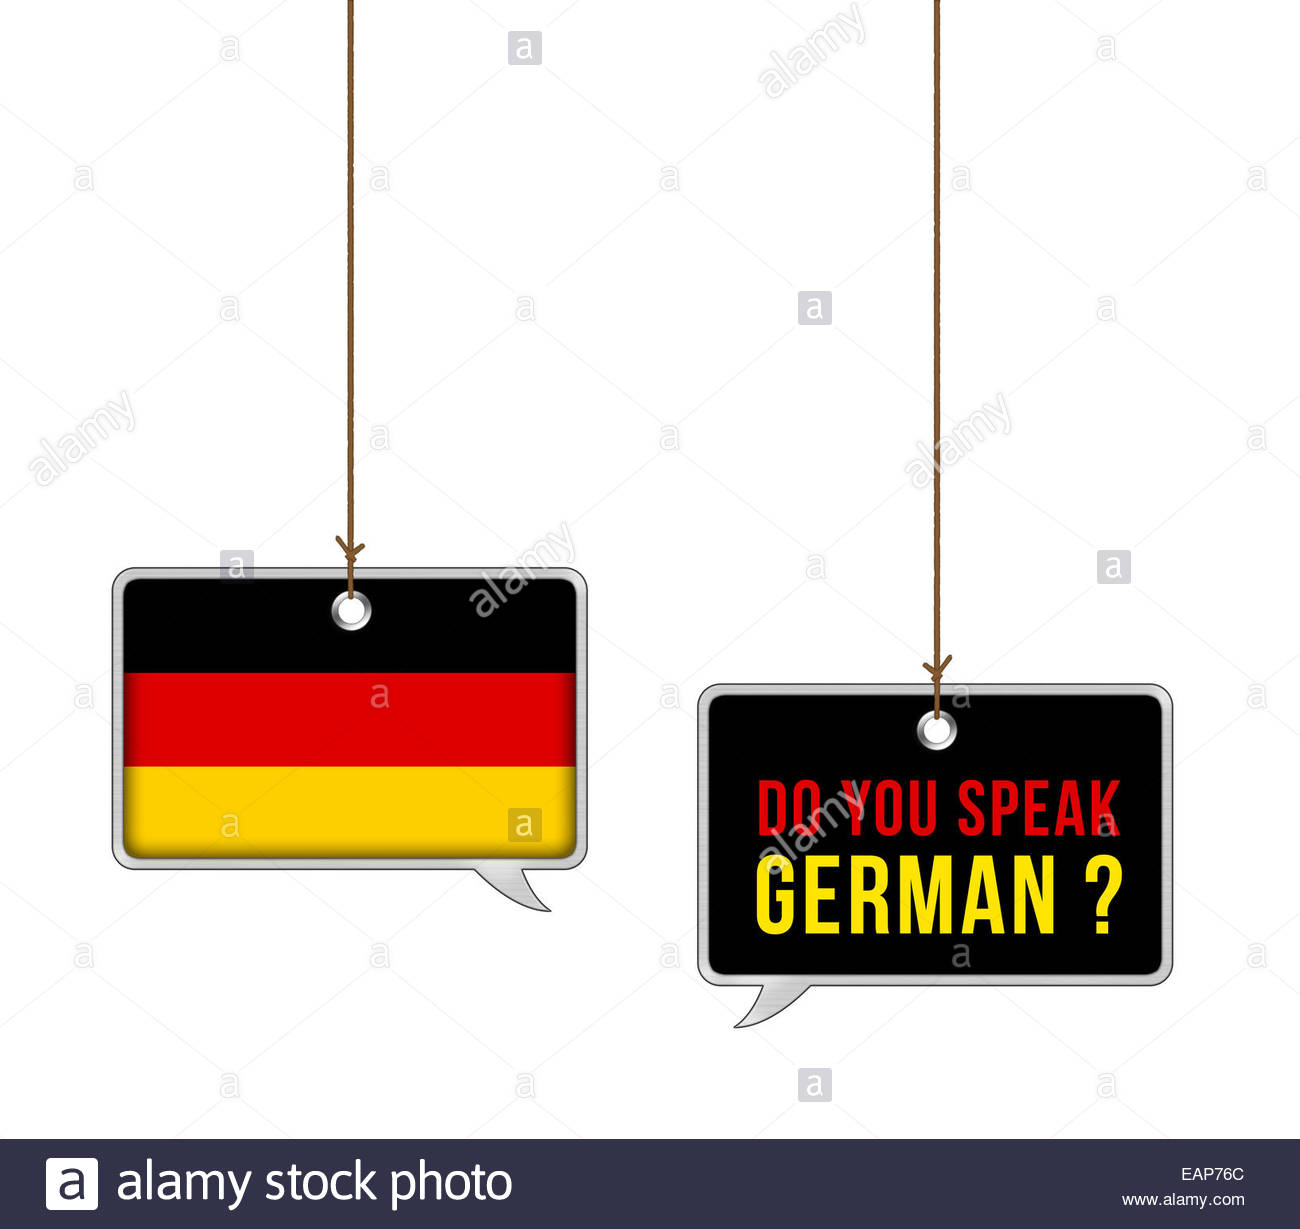 Learn German language - illustration concept - Stock Image